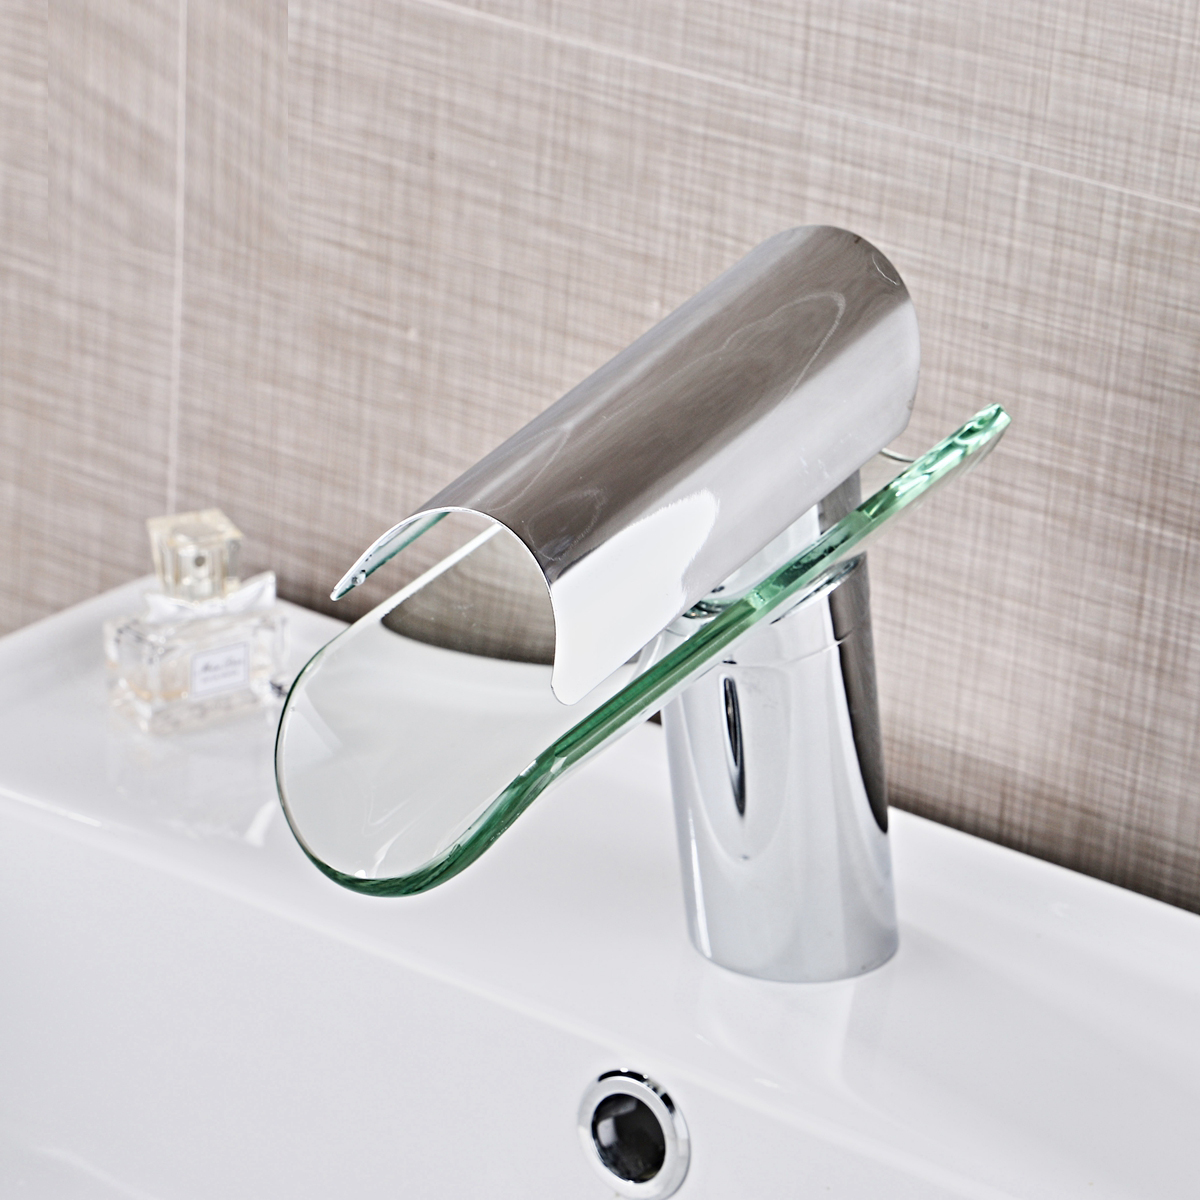 A1 Copper faucet bathroom washbasin washbasin bathroom cabinet glass waterfall hot and cold water mixing wx6011436A1 Copper faucet bathroom washbasin washbasin bathroom cabinet glass waterfall hot and cold water mixing wx6011436